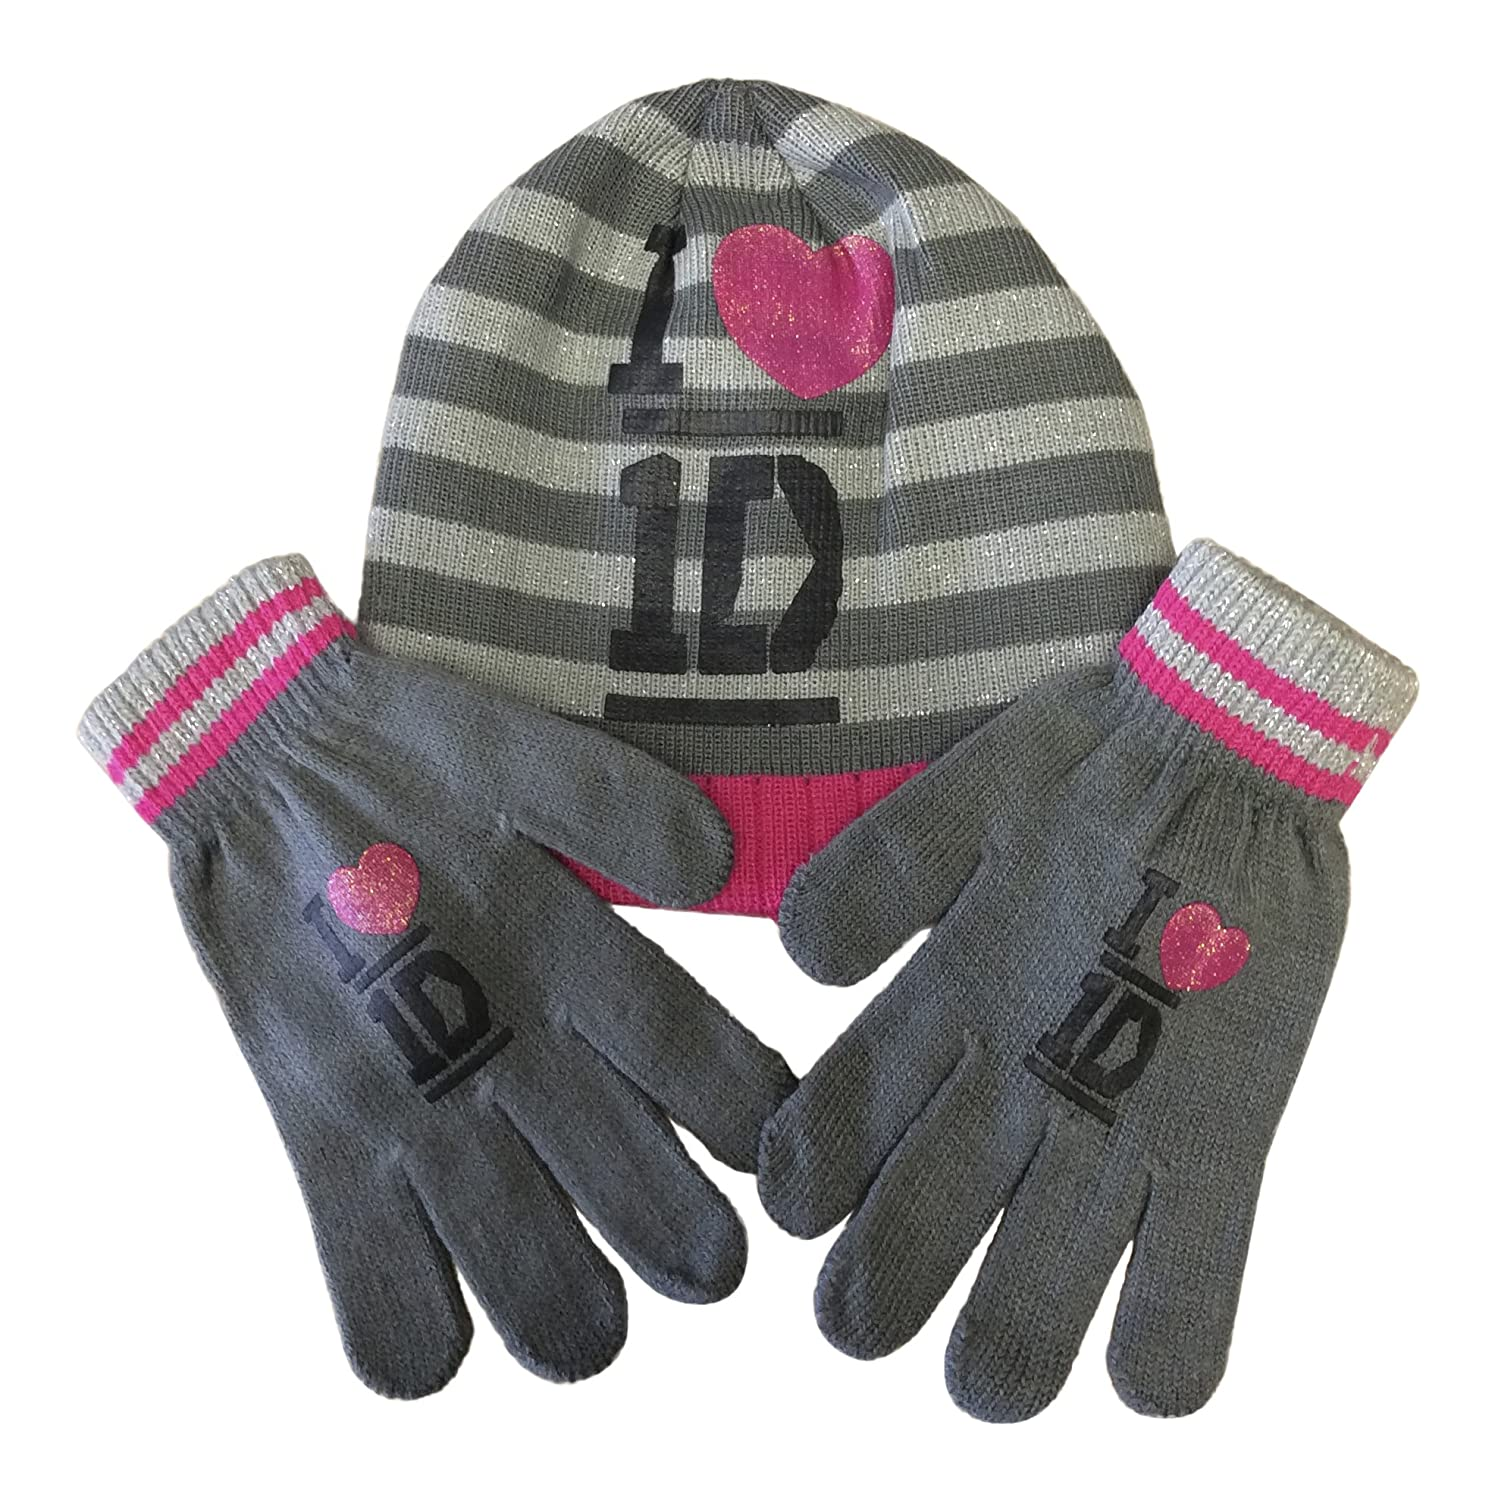 NEW GIRLS DORA THE EXPLORER HAT /& GLOVE SET 3-8 YEARS